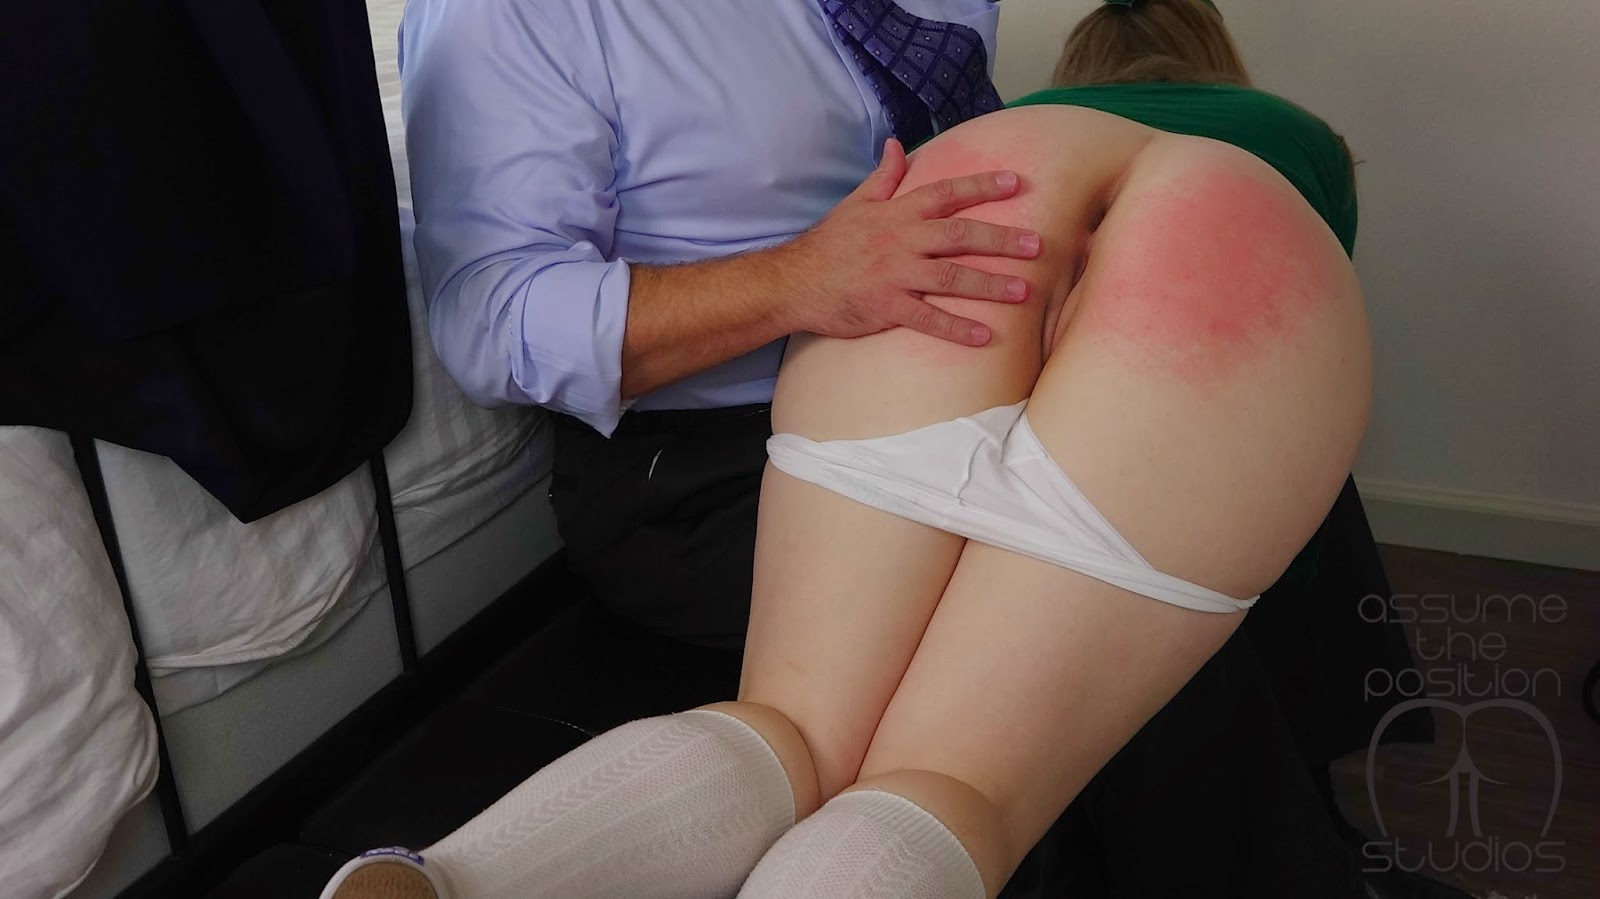 Sore bottom spanked my